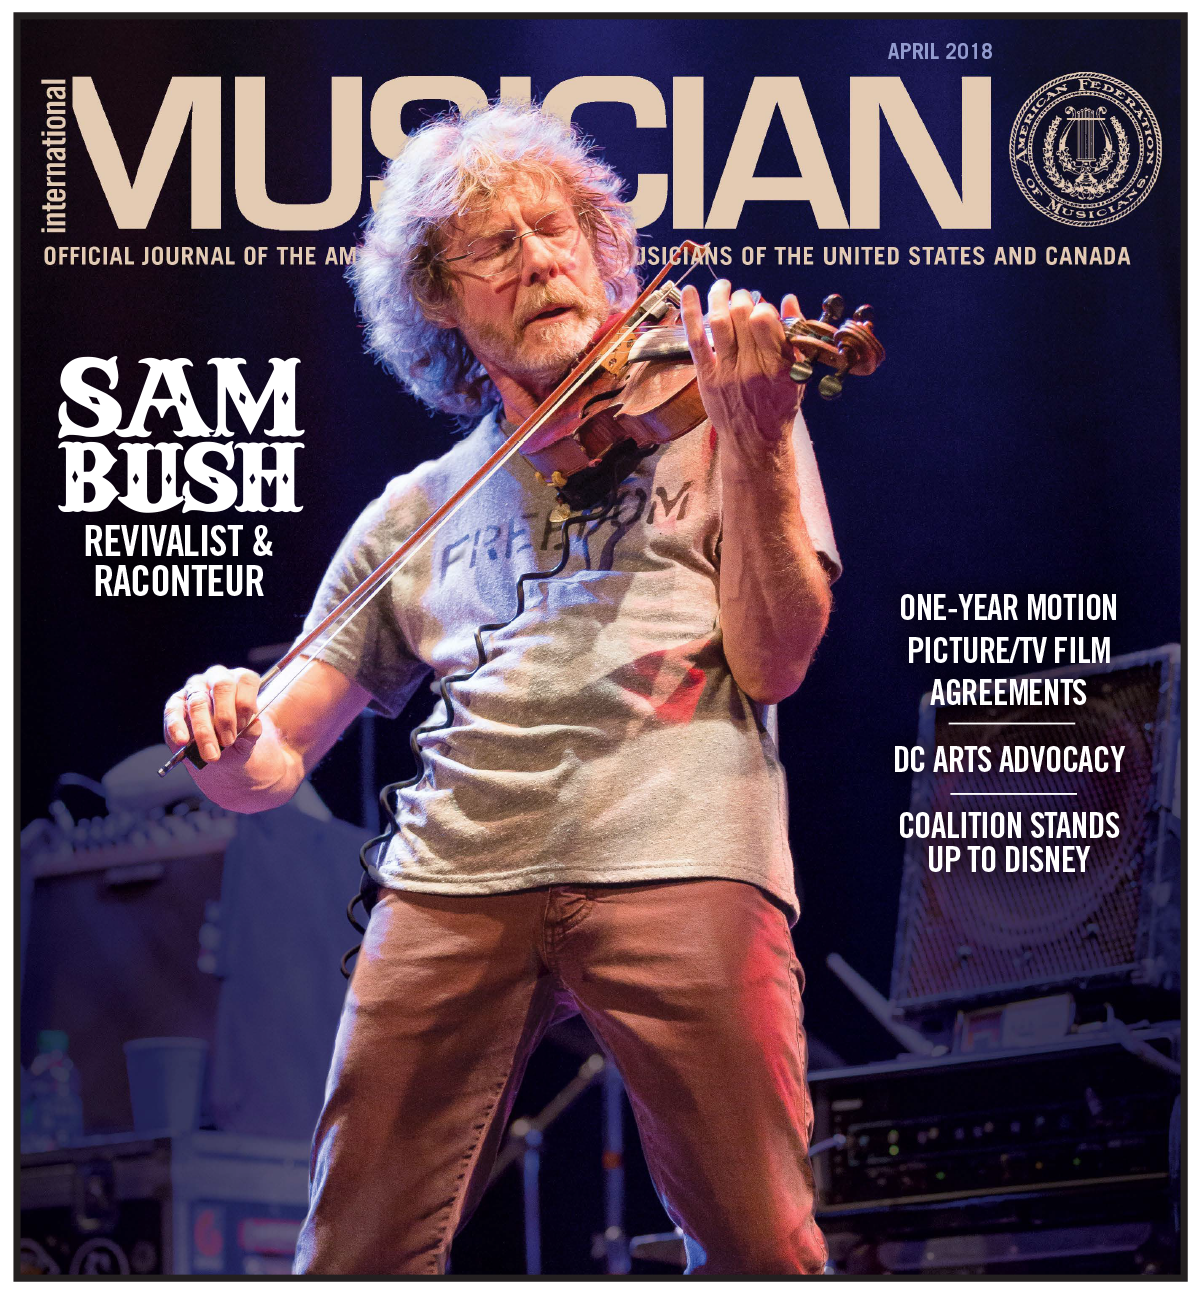 V116-04 - April 2018 - International Musician Magazine